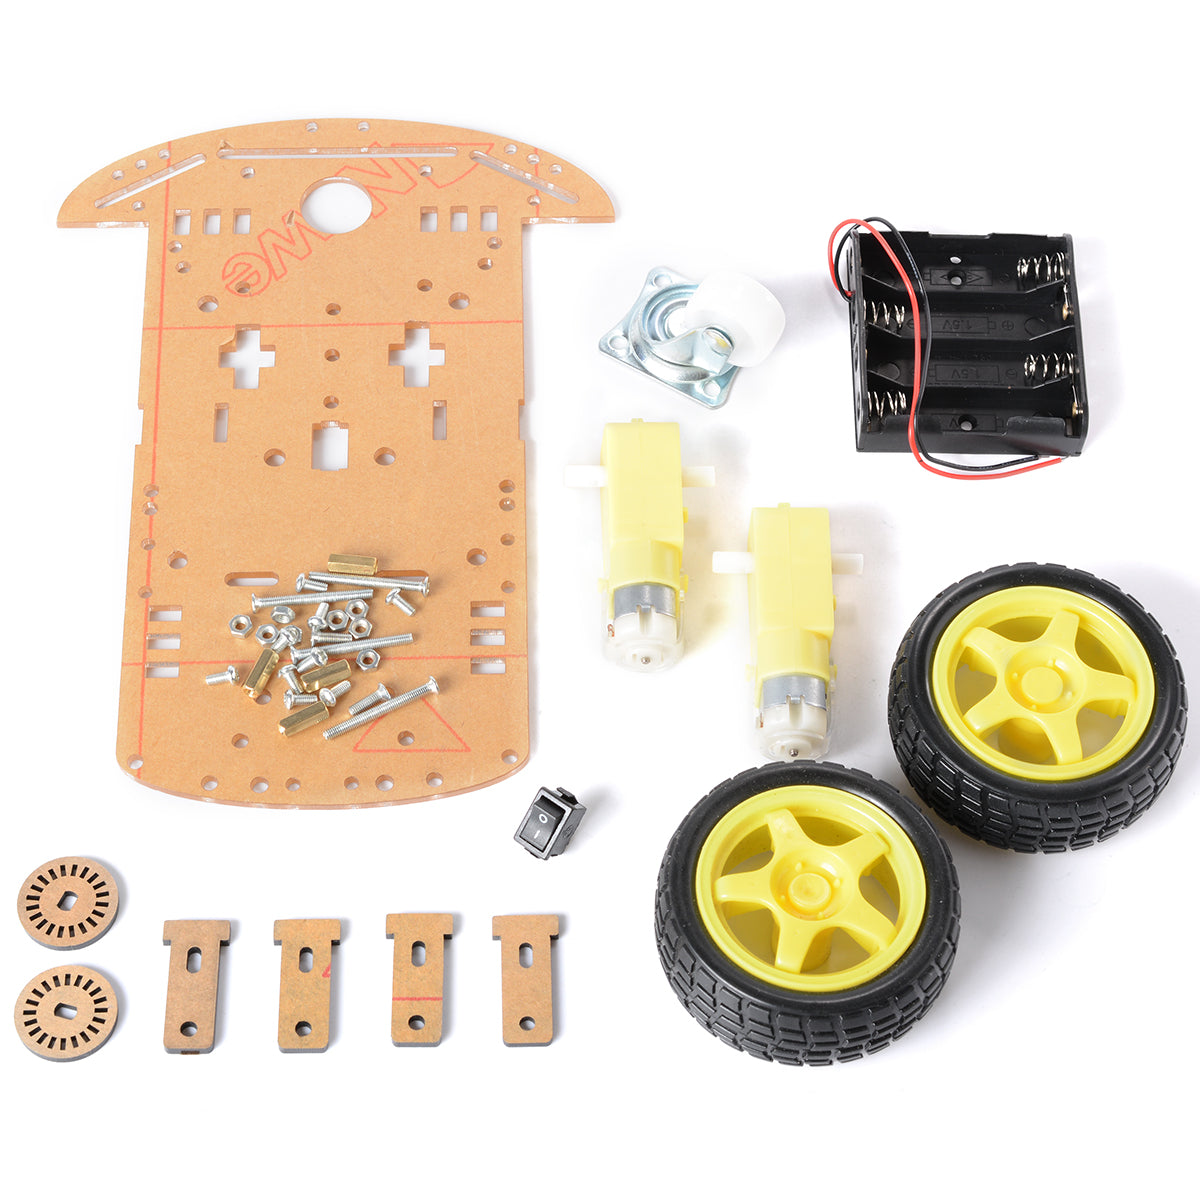 Smart Robot Car Chassis Kit - 2Wheel